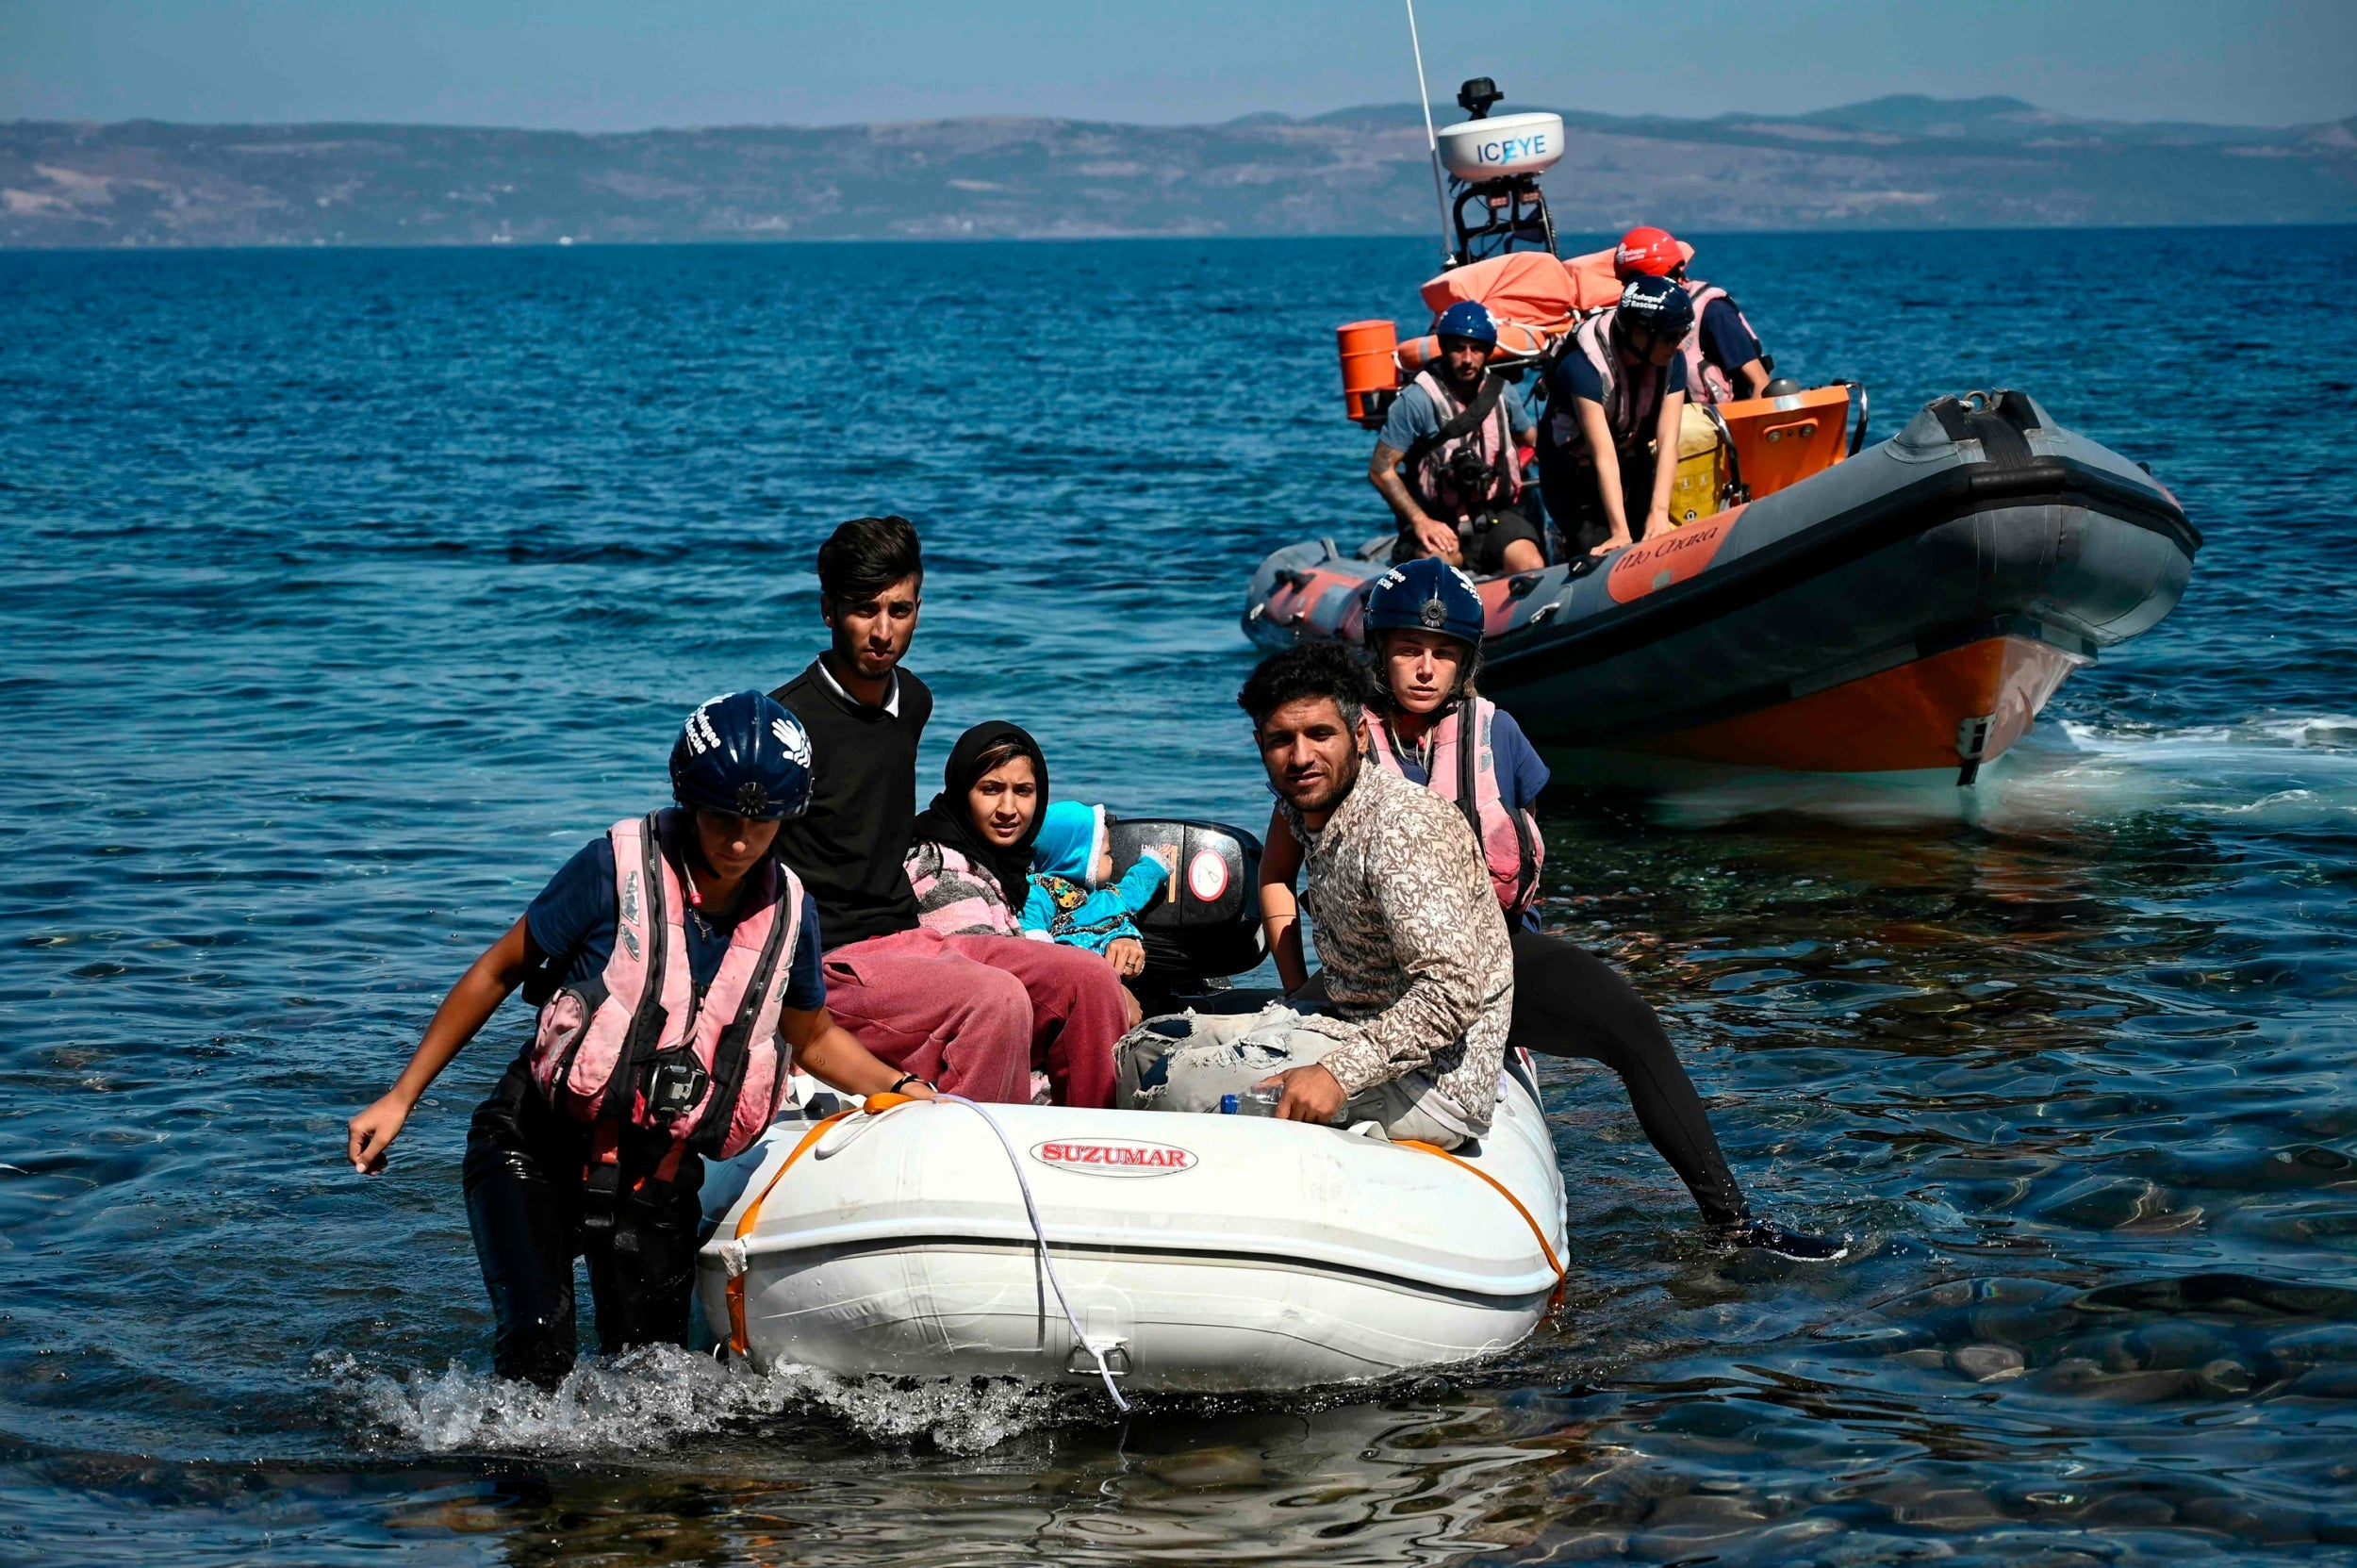 EU parliament votes against improving search and rescue for refugees in Mediterranean 2